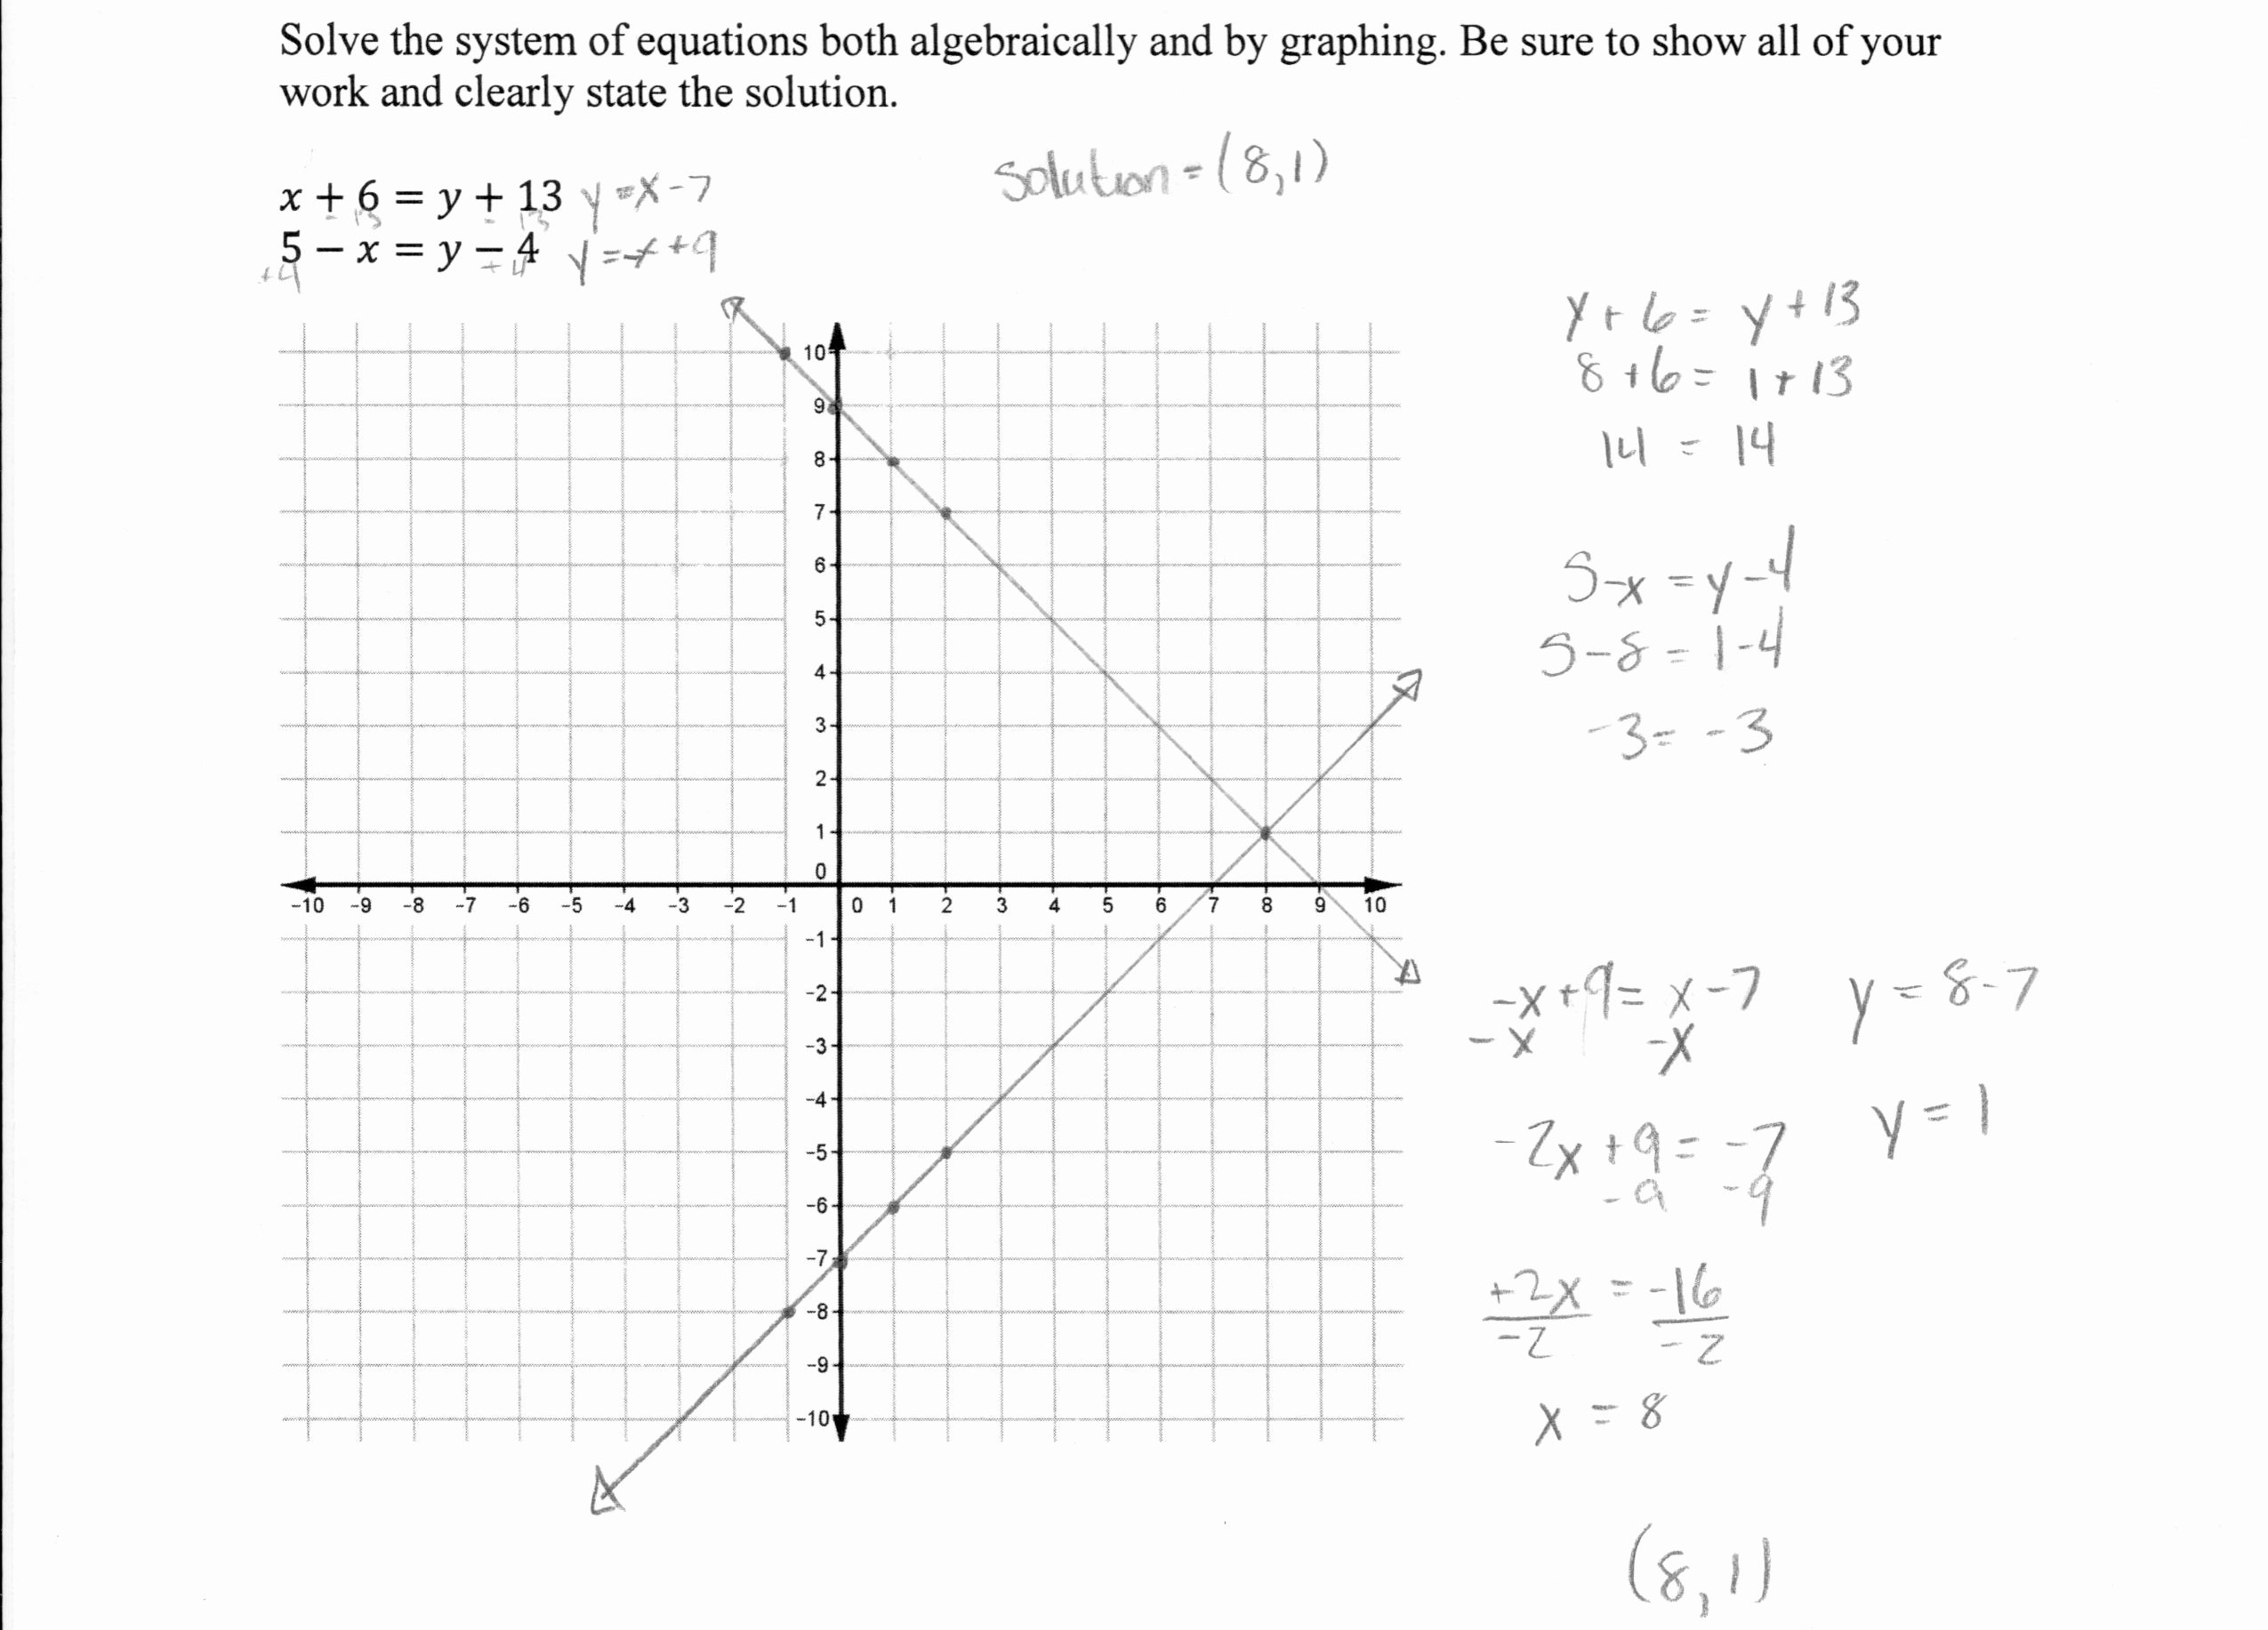 Linear Quadratic Systems Worksheet Luxury Graphing Systems Linear and Quadratic Equations